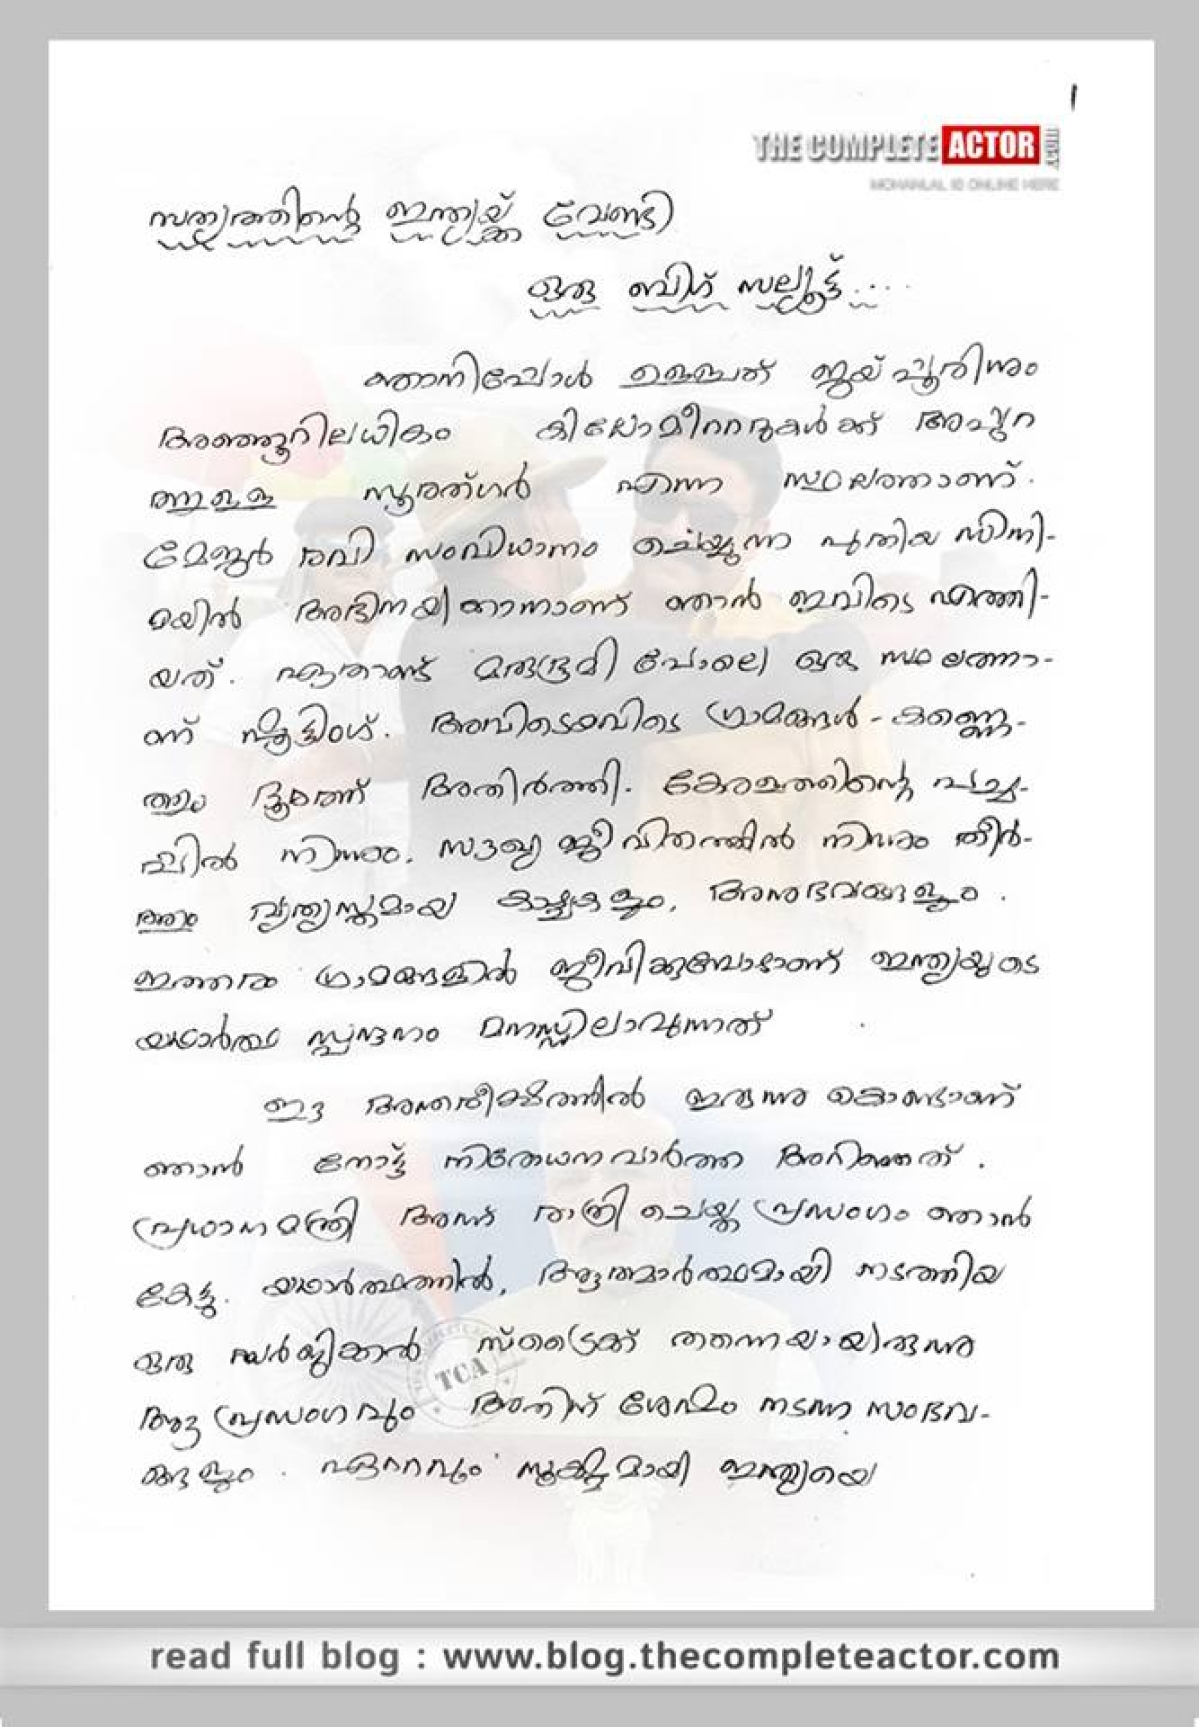 Malayalam Letter Format For Students. Page 1 of Mohanlal s 6 page letter supporting Modi demonetisation drive  Photo courtesy Malayalam Star Salutes PM Demonetisation Drive